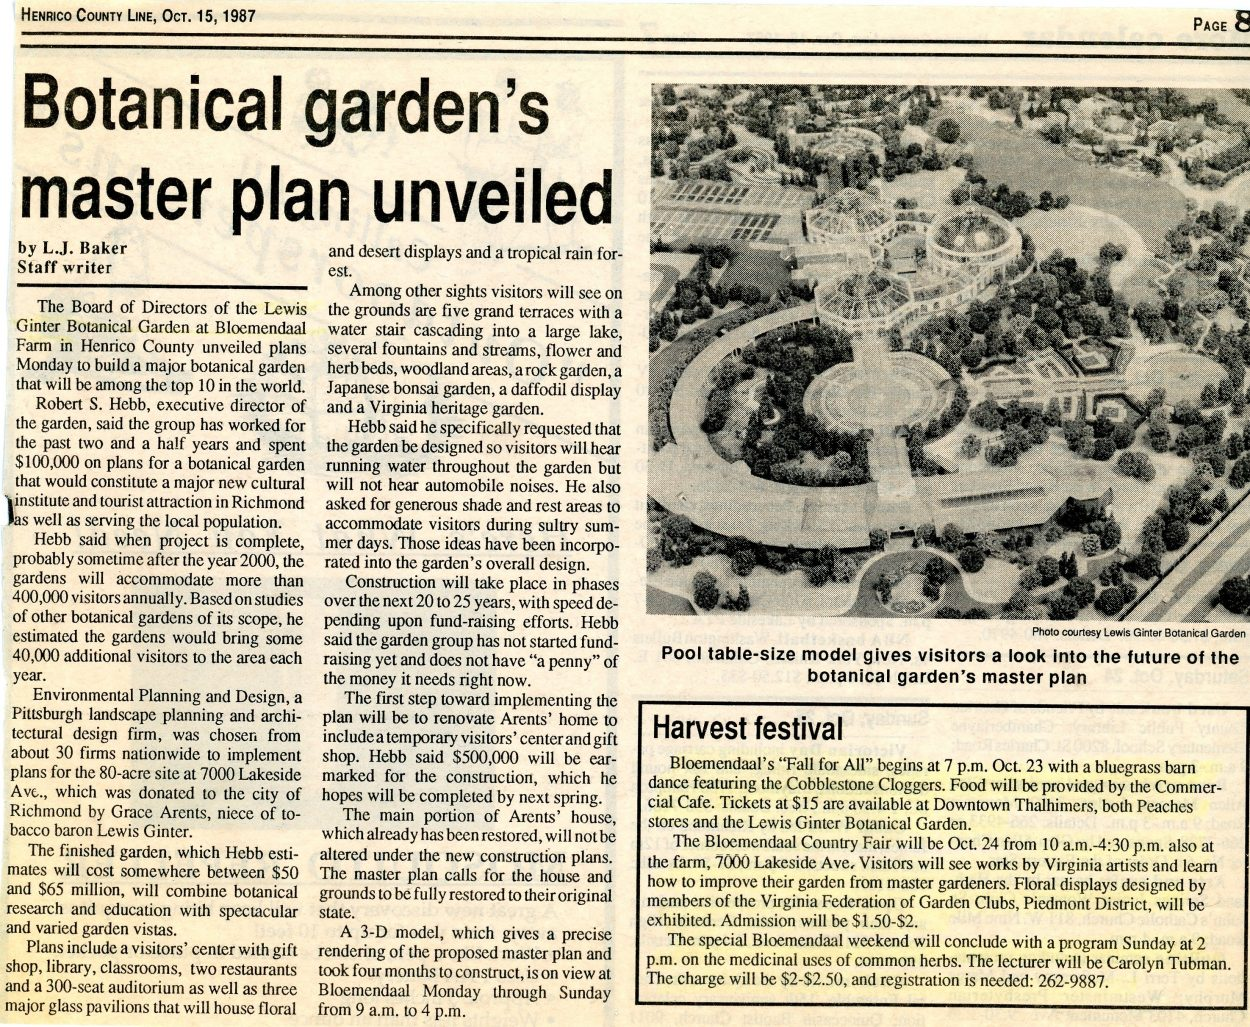 In 1987, this masterplan started a dream to be one of the top gardens in the word.